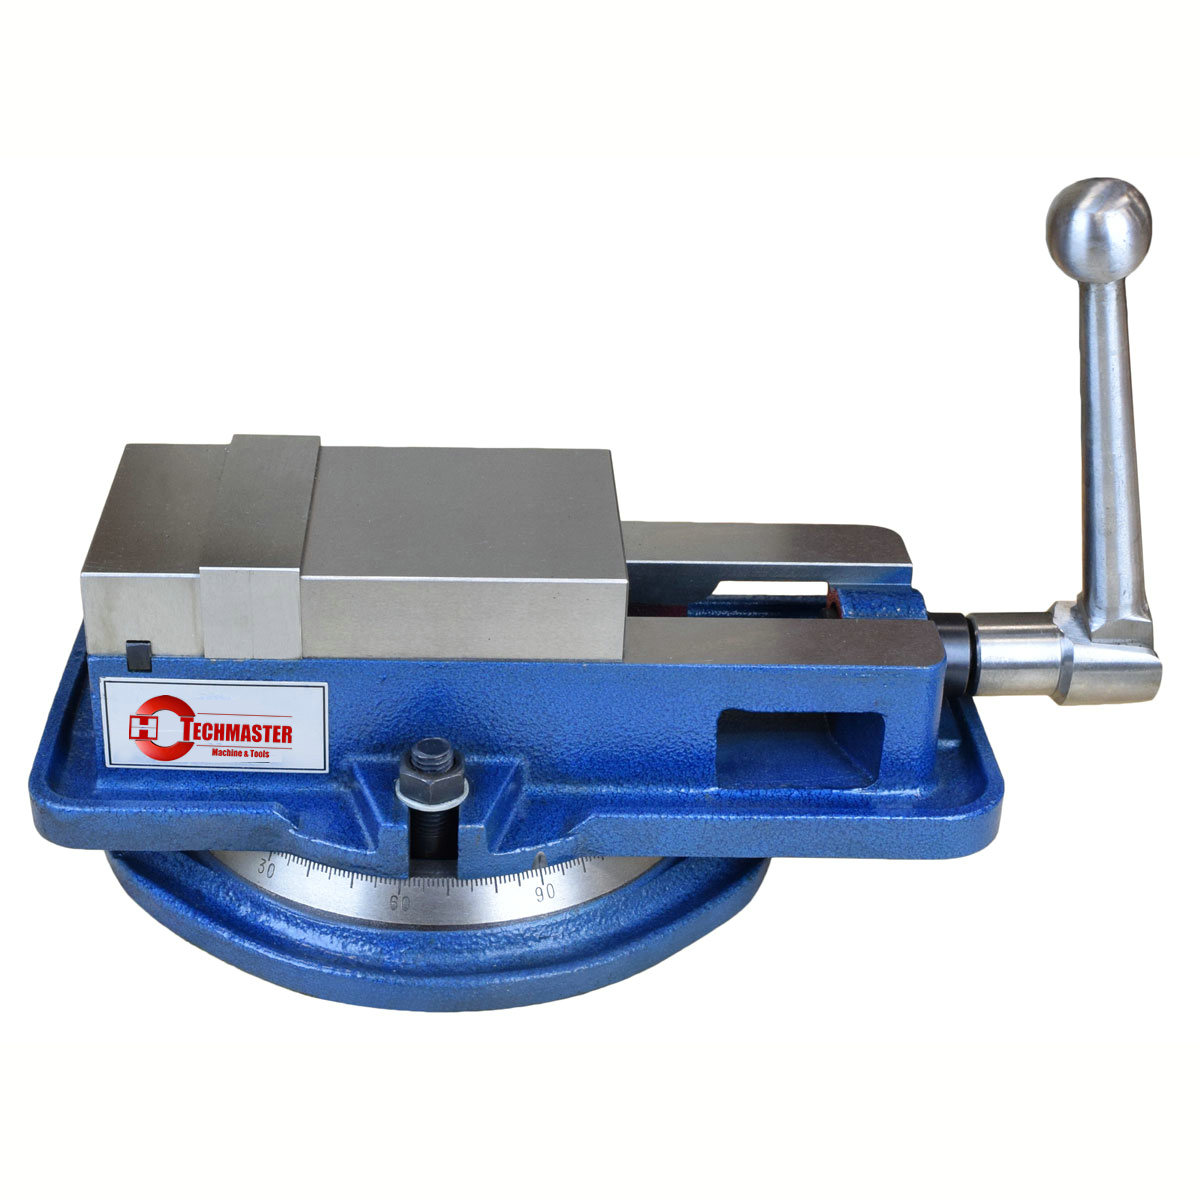 QG MACHINE VISE WITH SWIVEL BASE (TOP QUALITY )